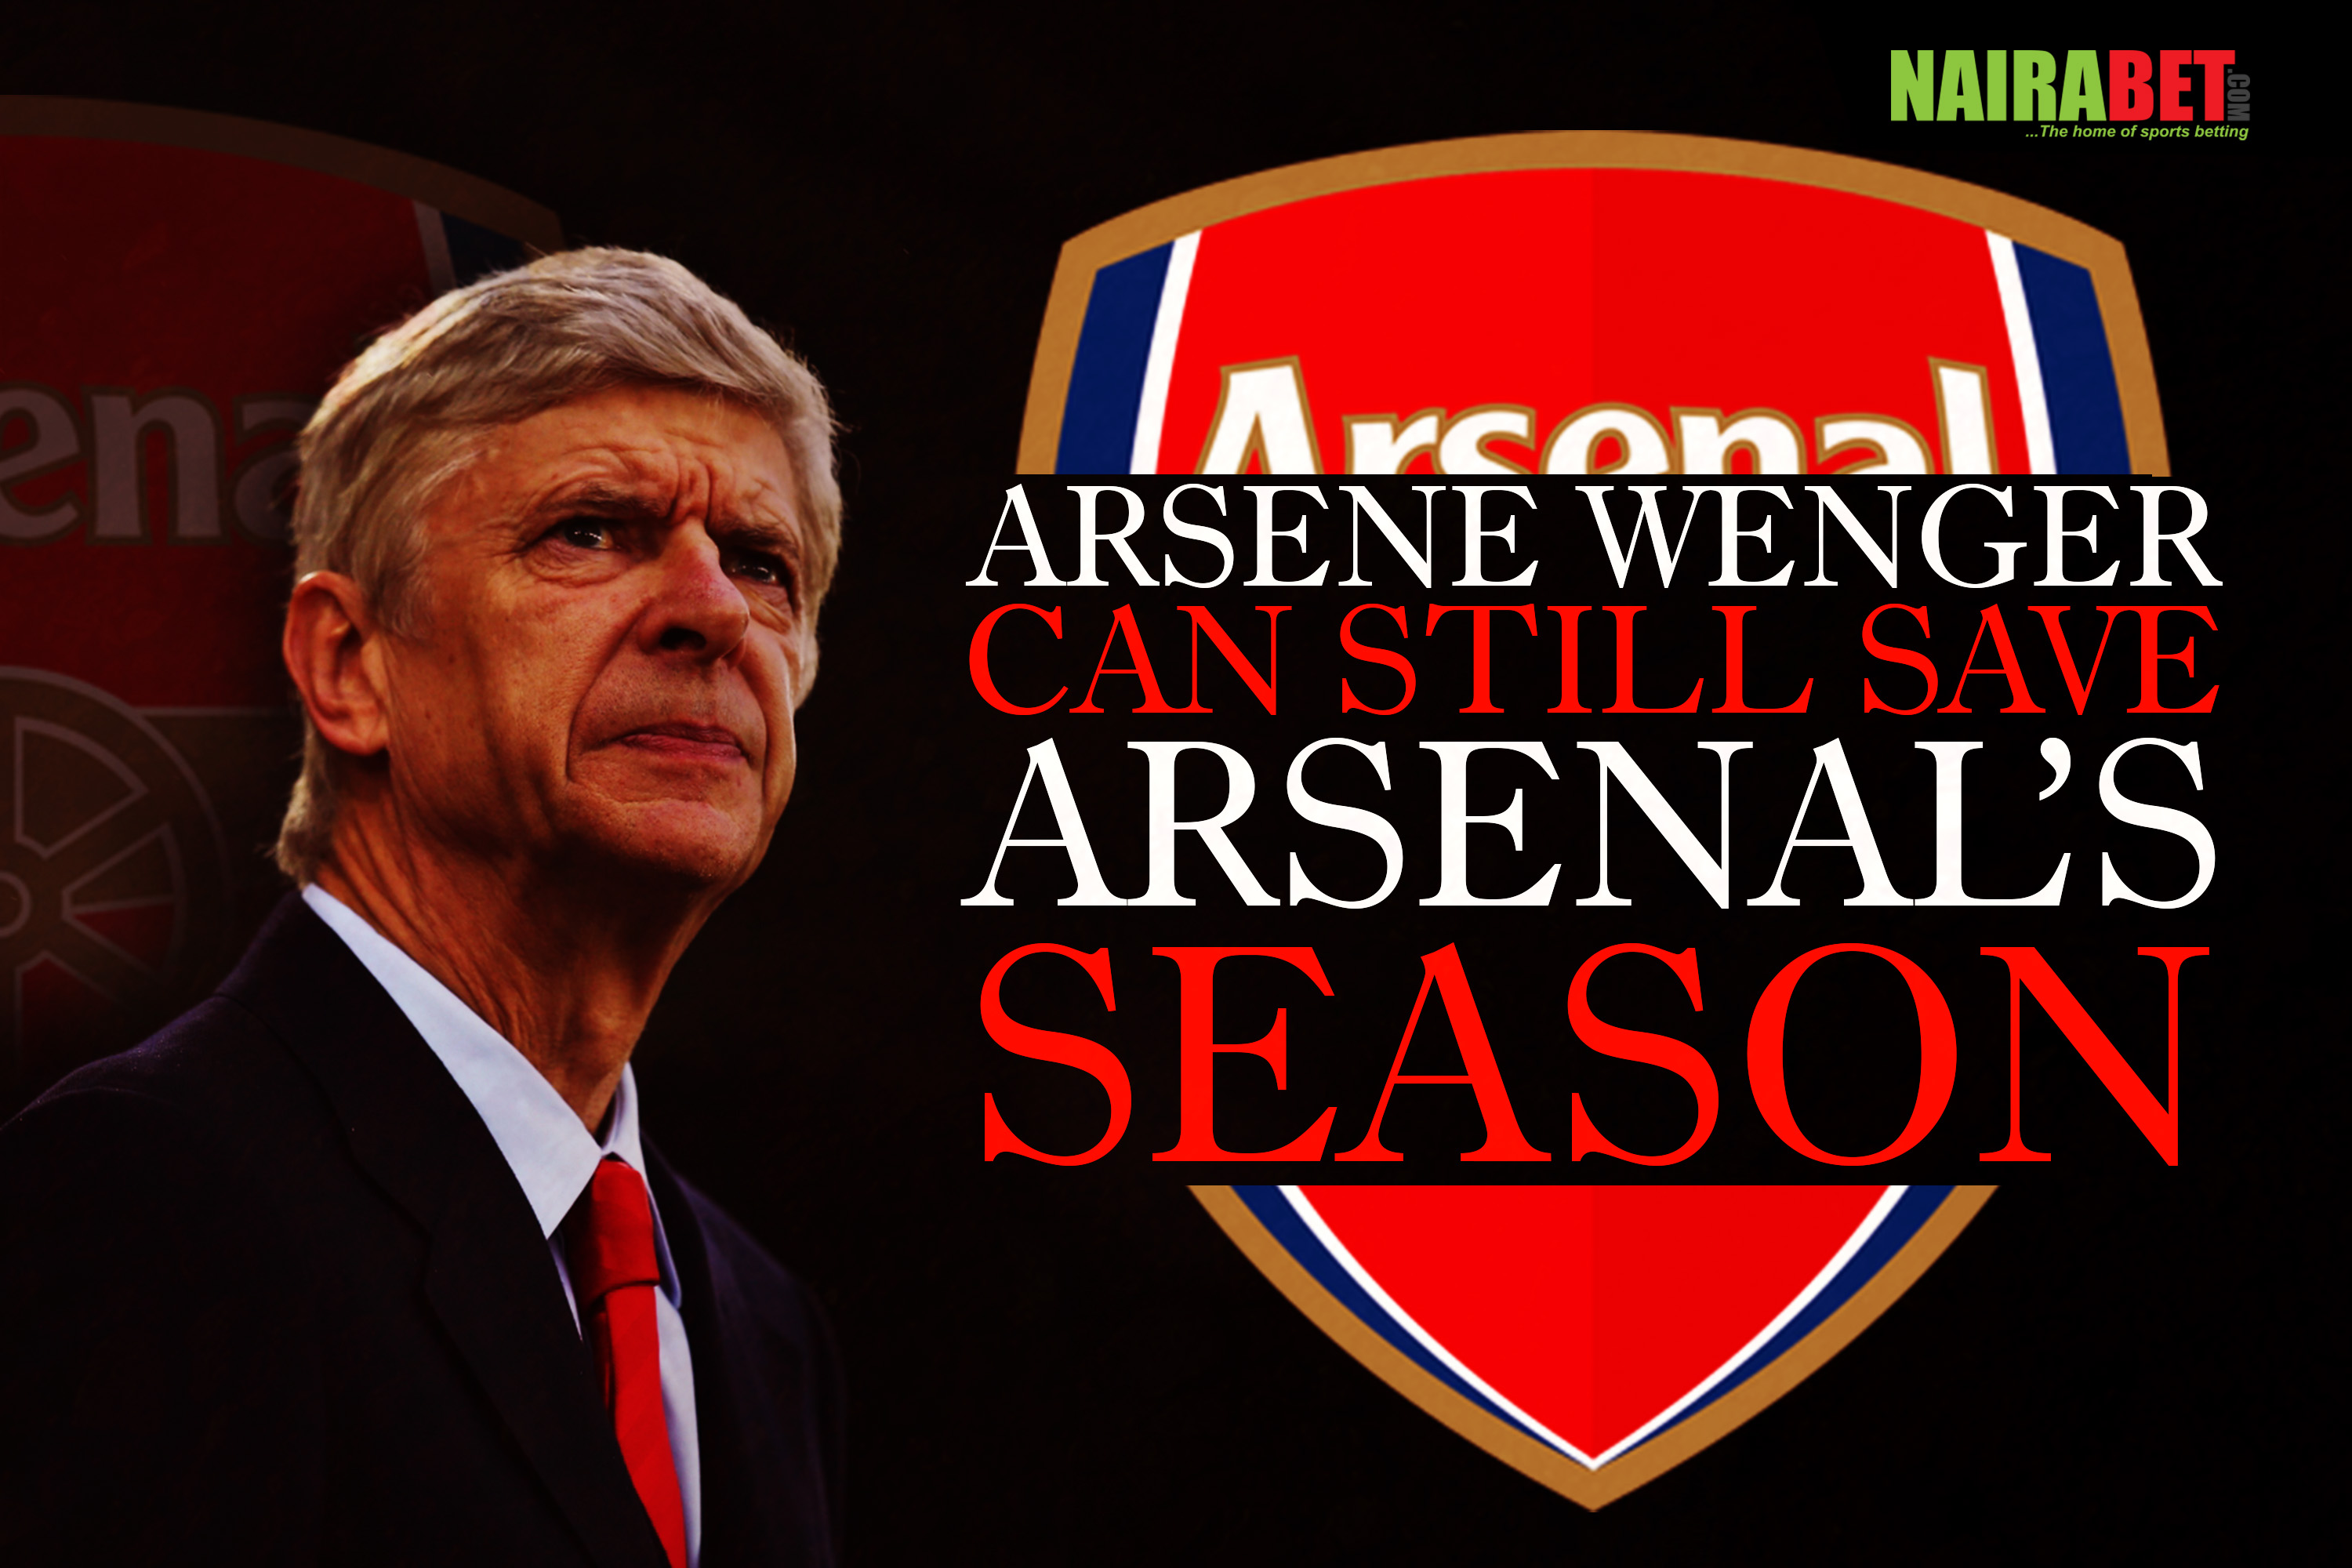 arsene wenger save arsenal season